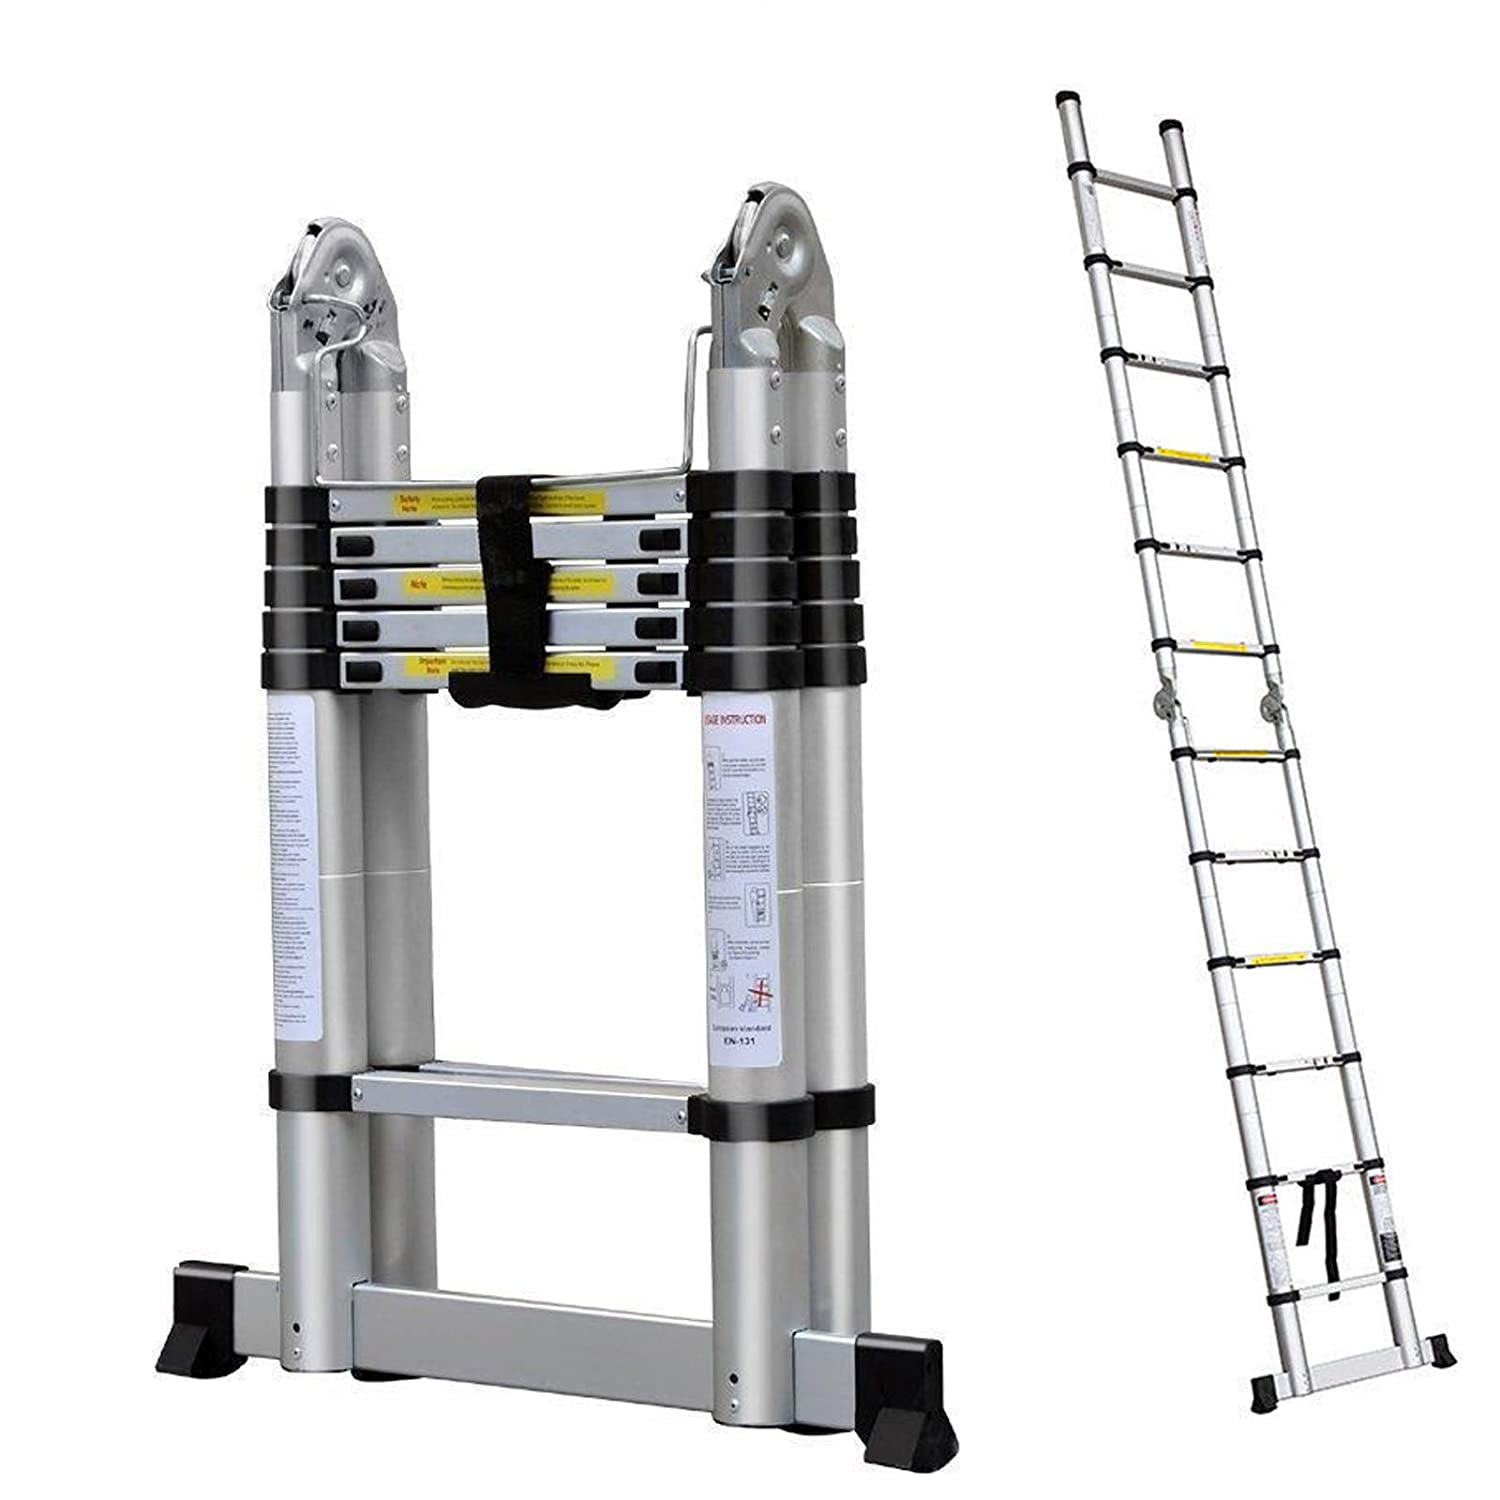 5M / 2.5M+ 2.5M Foldable Ladders A Frame Telescopic Aluminium Extendable Extension 16 Steps150kg Max. Capacity Multipurpose Climb Ladder Portable Loft Attic for Business Home Work DIY Builder dicn factory